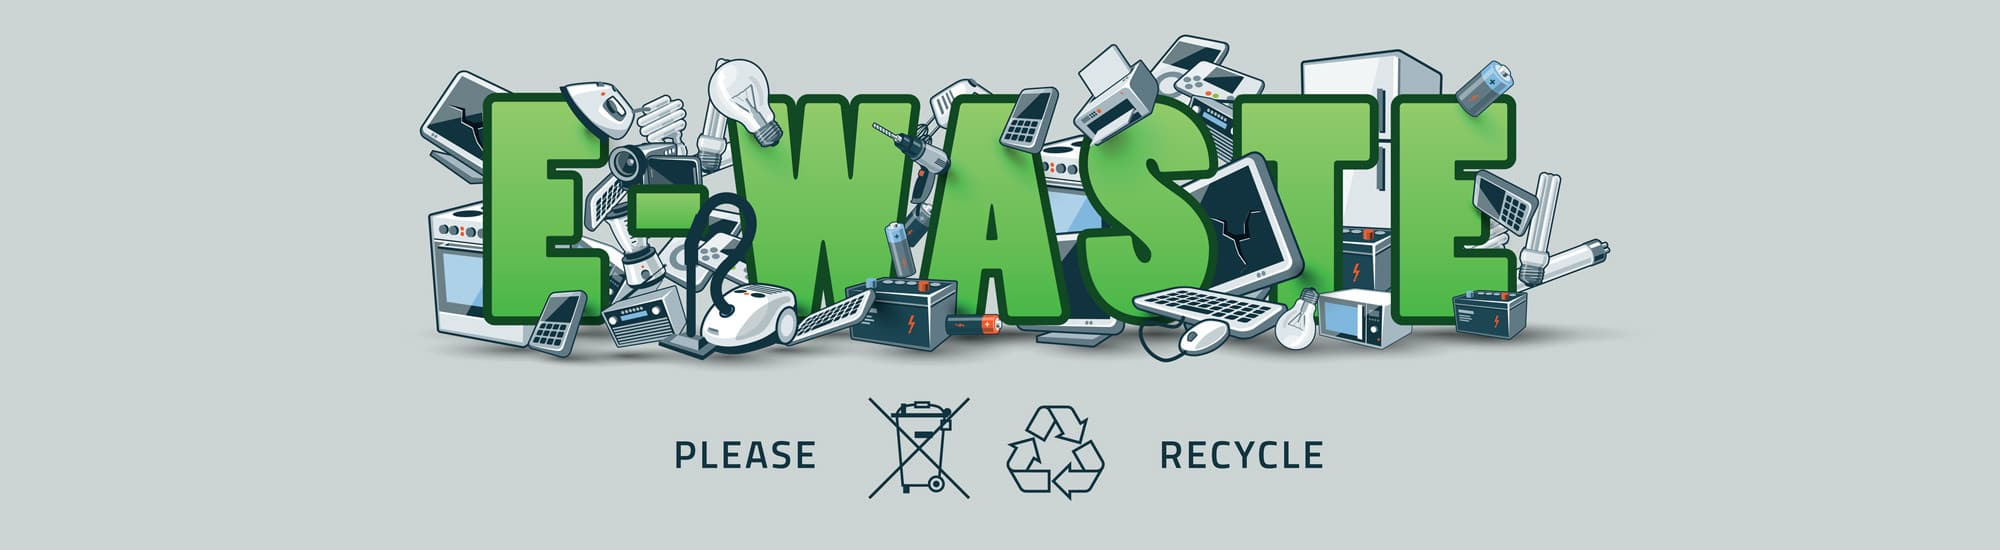 Recycle E Waste